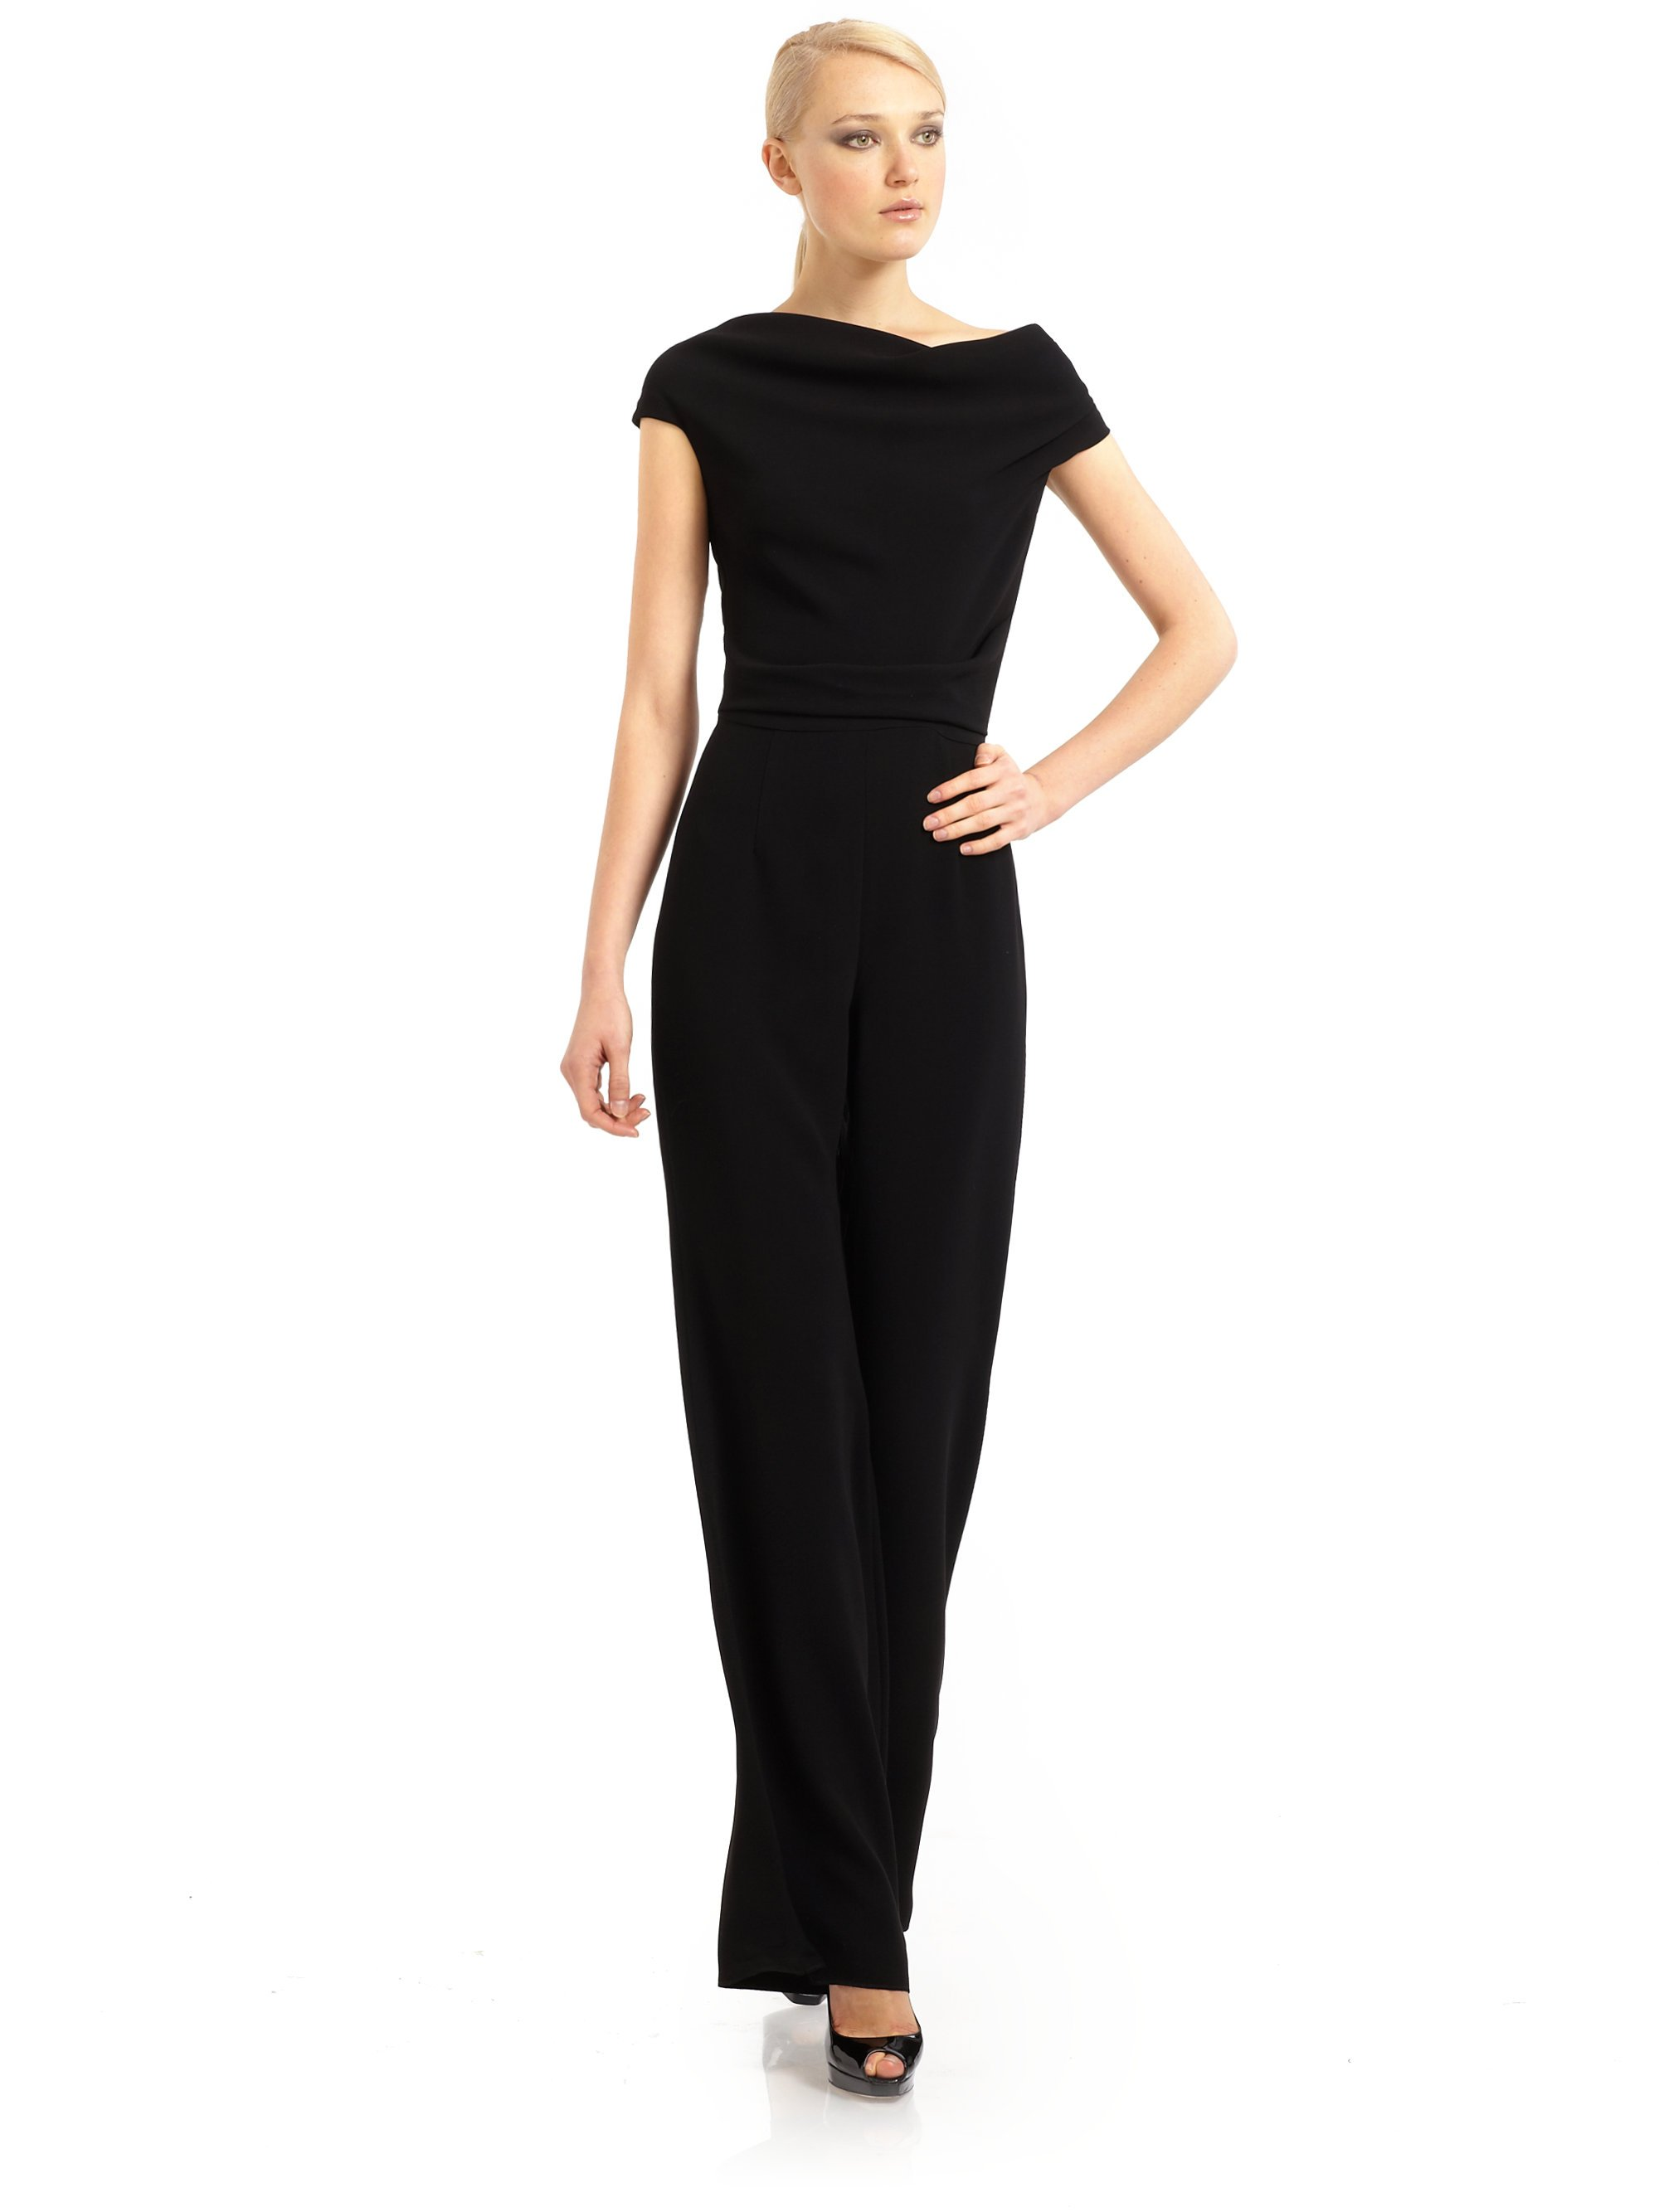 Lyst - Max Mara Cowl Neck One Piece Pant Suit in Black